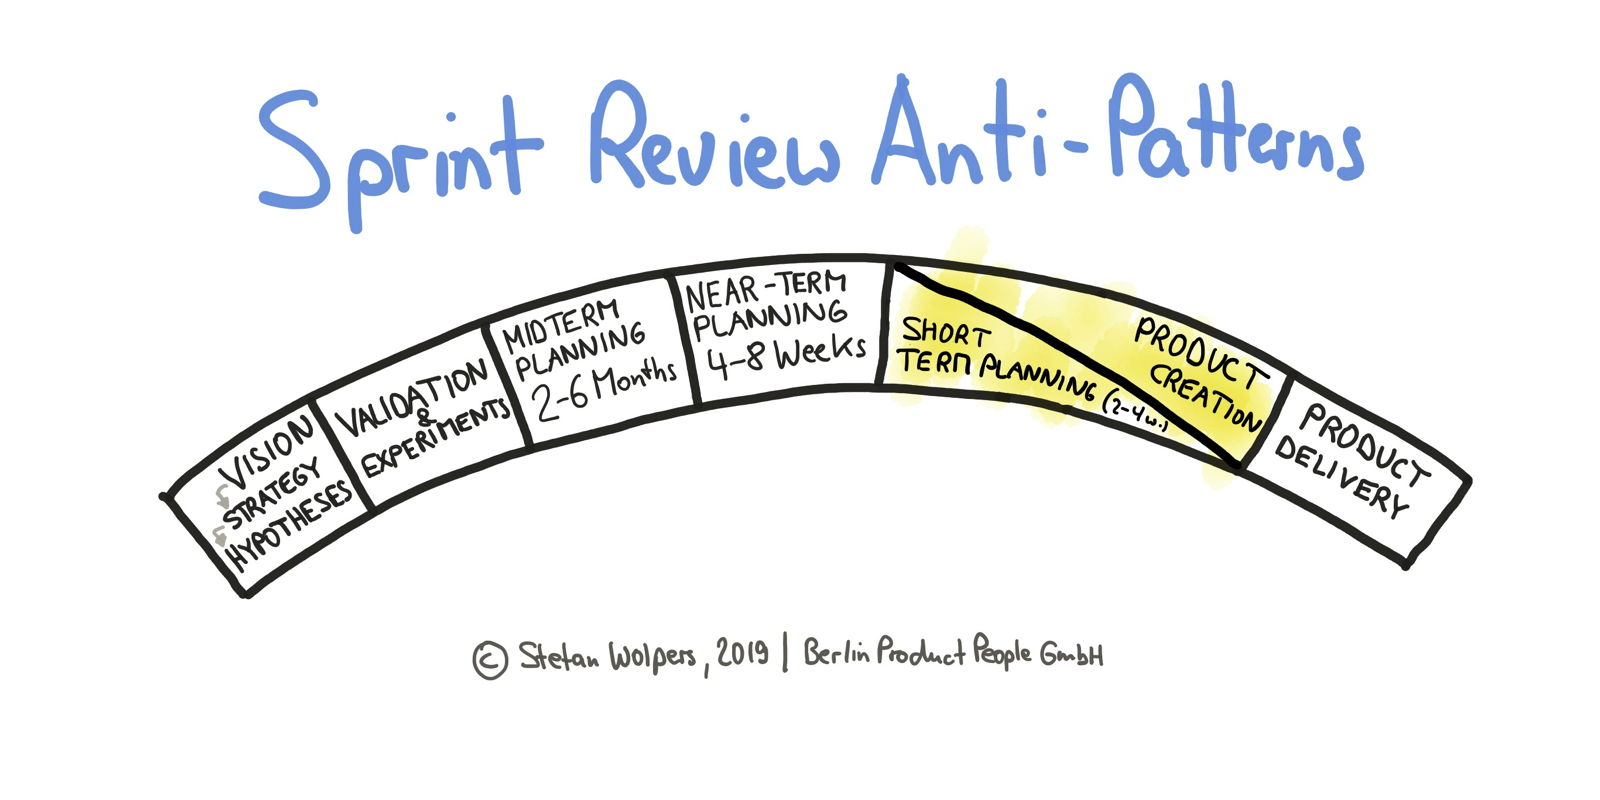 15 Sprint Review Anti-Patterns